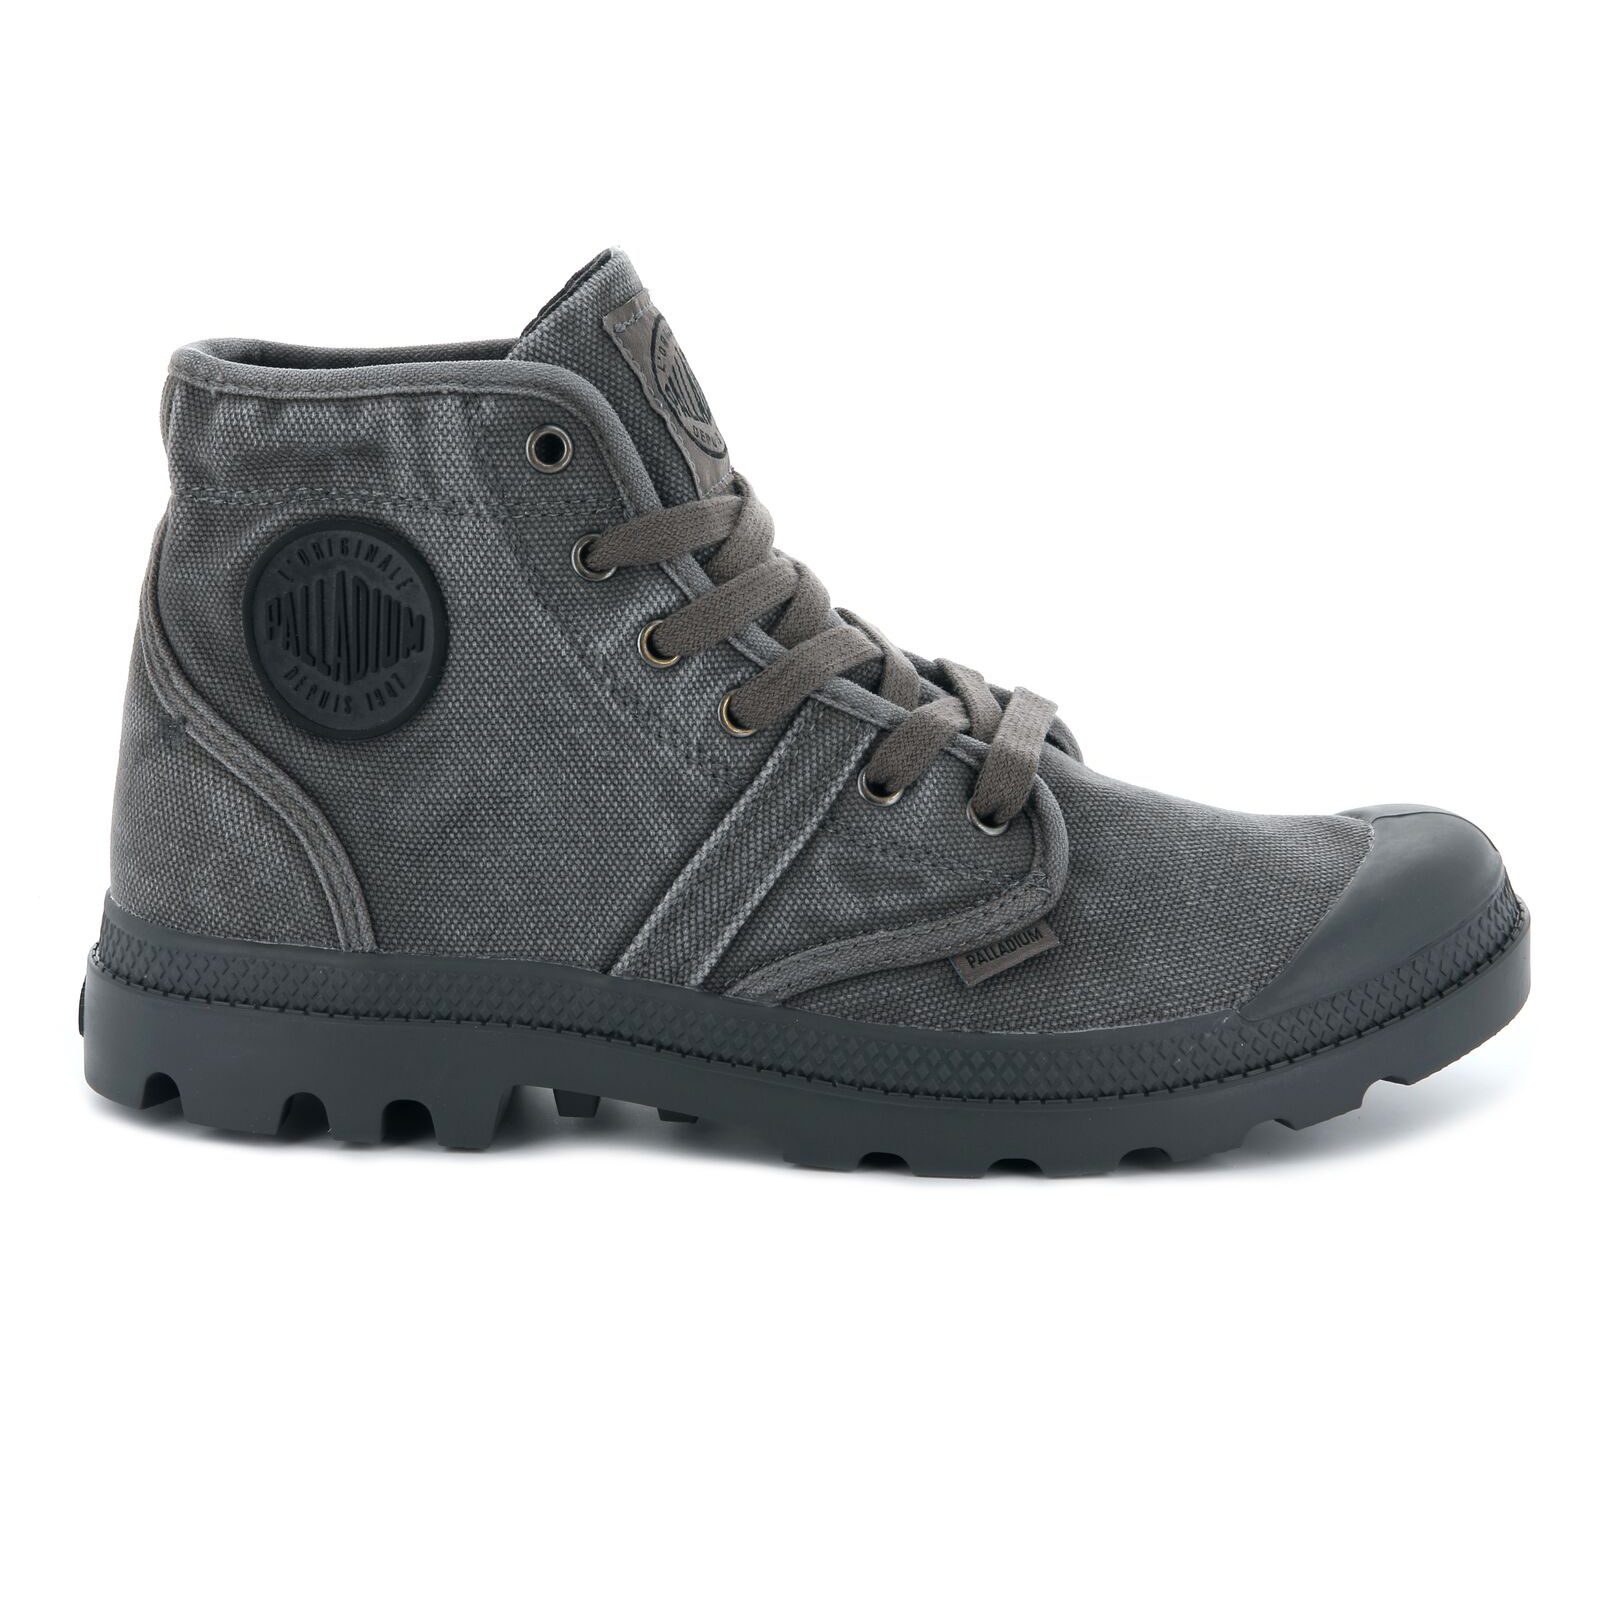 Palladium-Mens-Shoe-Pallabrouse-New-Designer-Walking-High-Top-Canvas-Ankle-Boots thumbnail 14